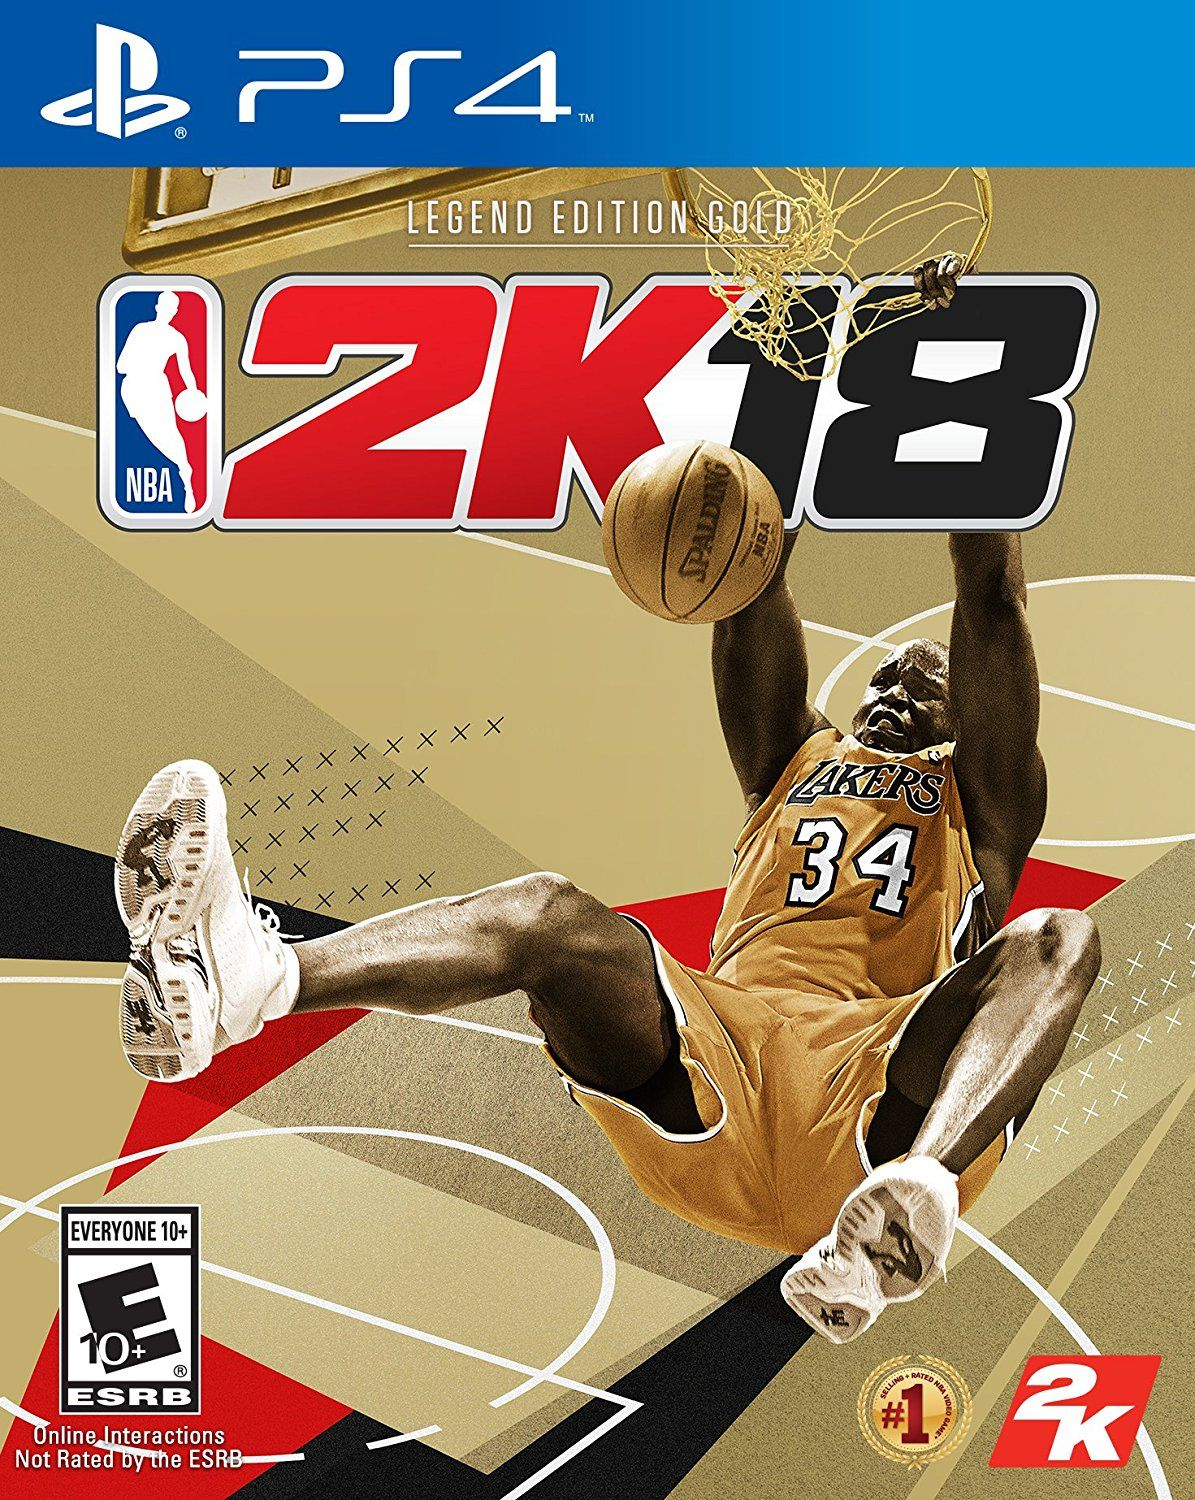 NBA 2K18 Game Cover PS4 Legend Edition Gold Nba video